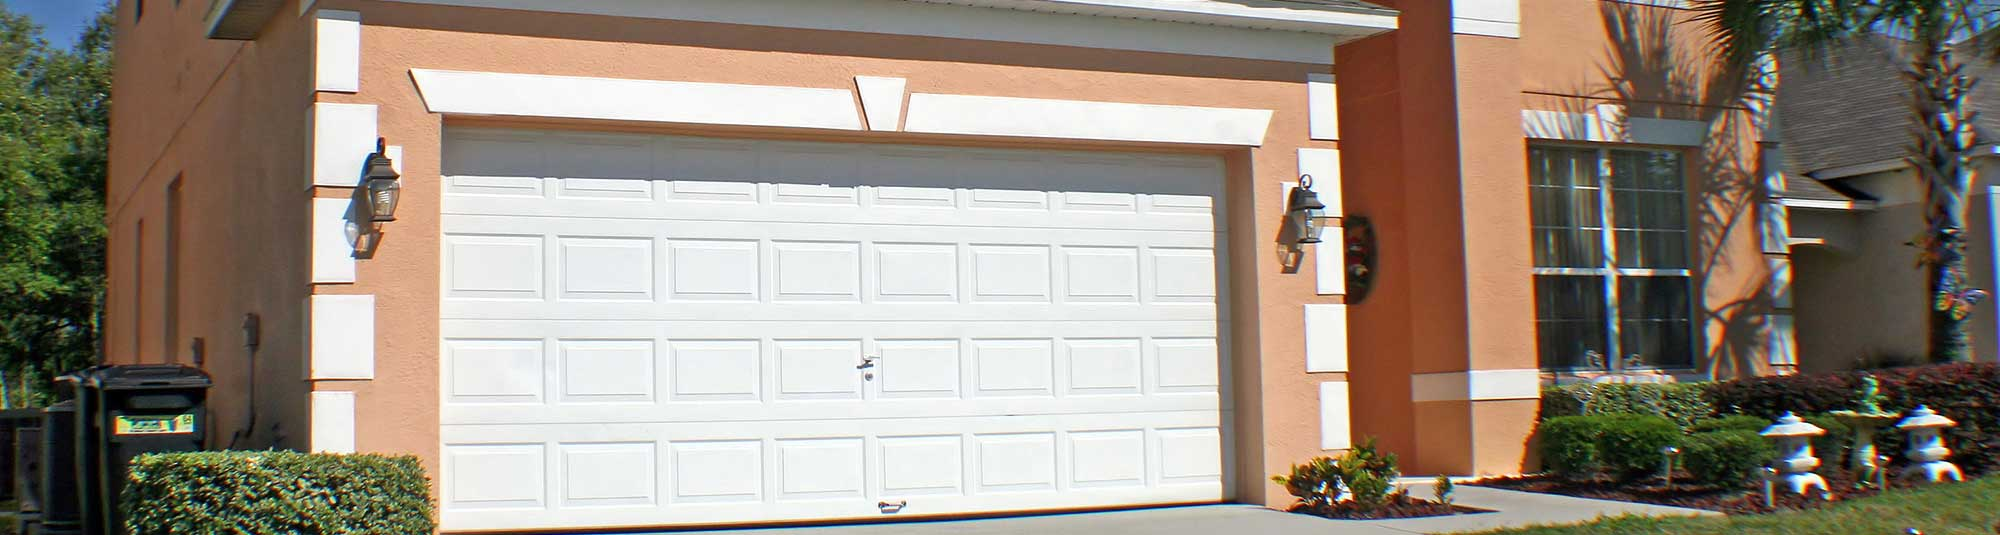 Garage Door Opener, Overhead Doors, Roll Up Doors In Parkland, Palm Beach